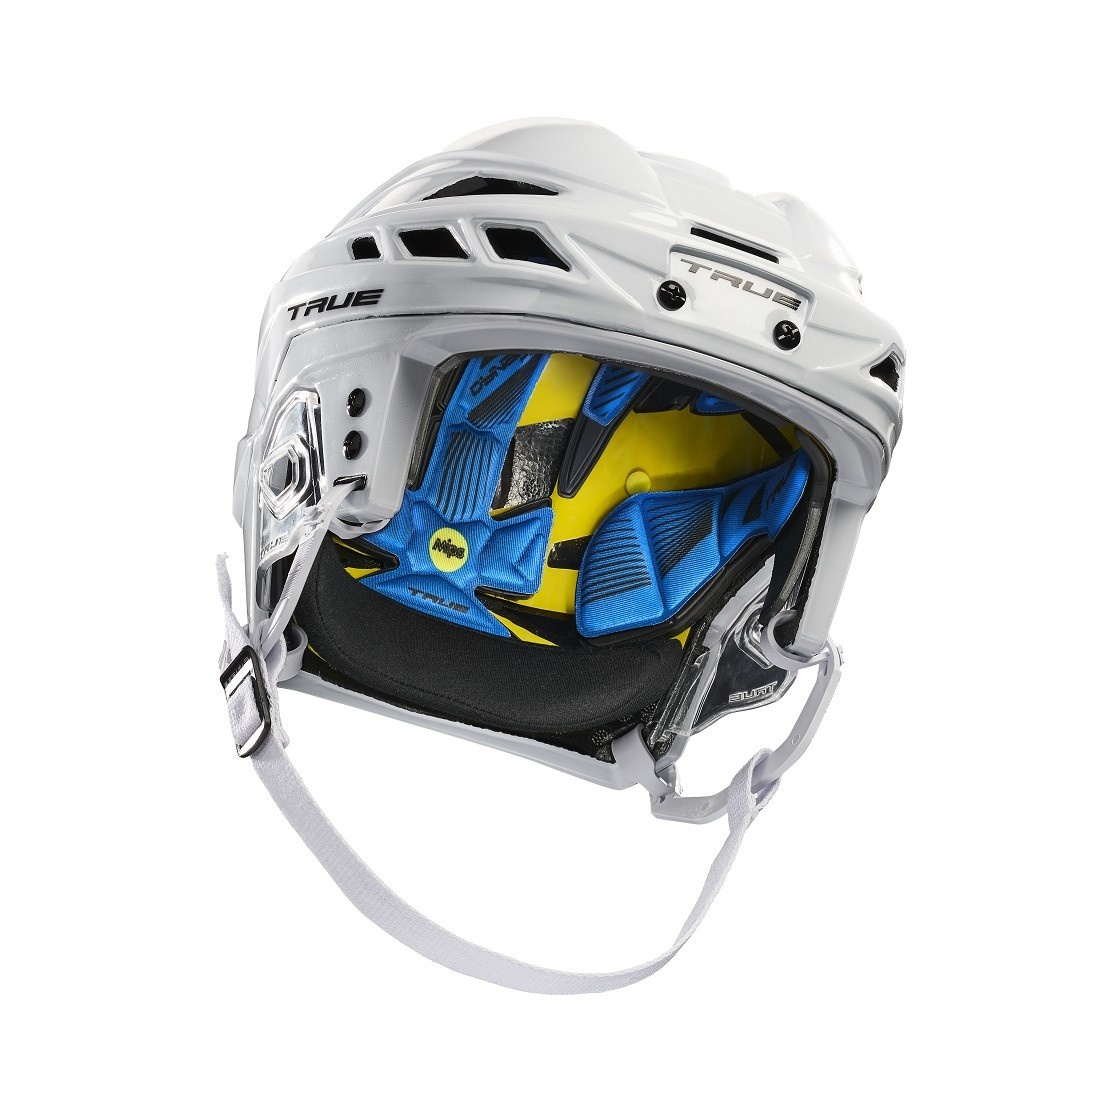 True TRUE HT DYNAMIC 9 PRO HOCKEY HELMET